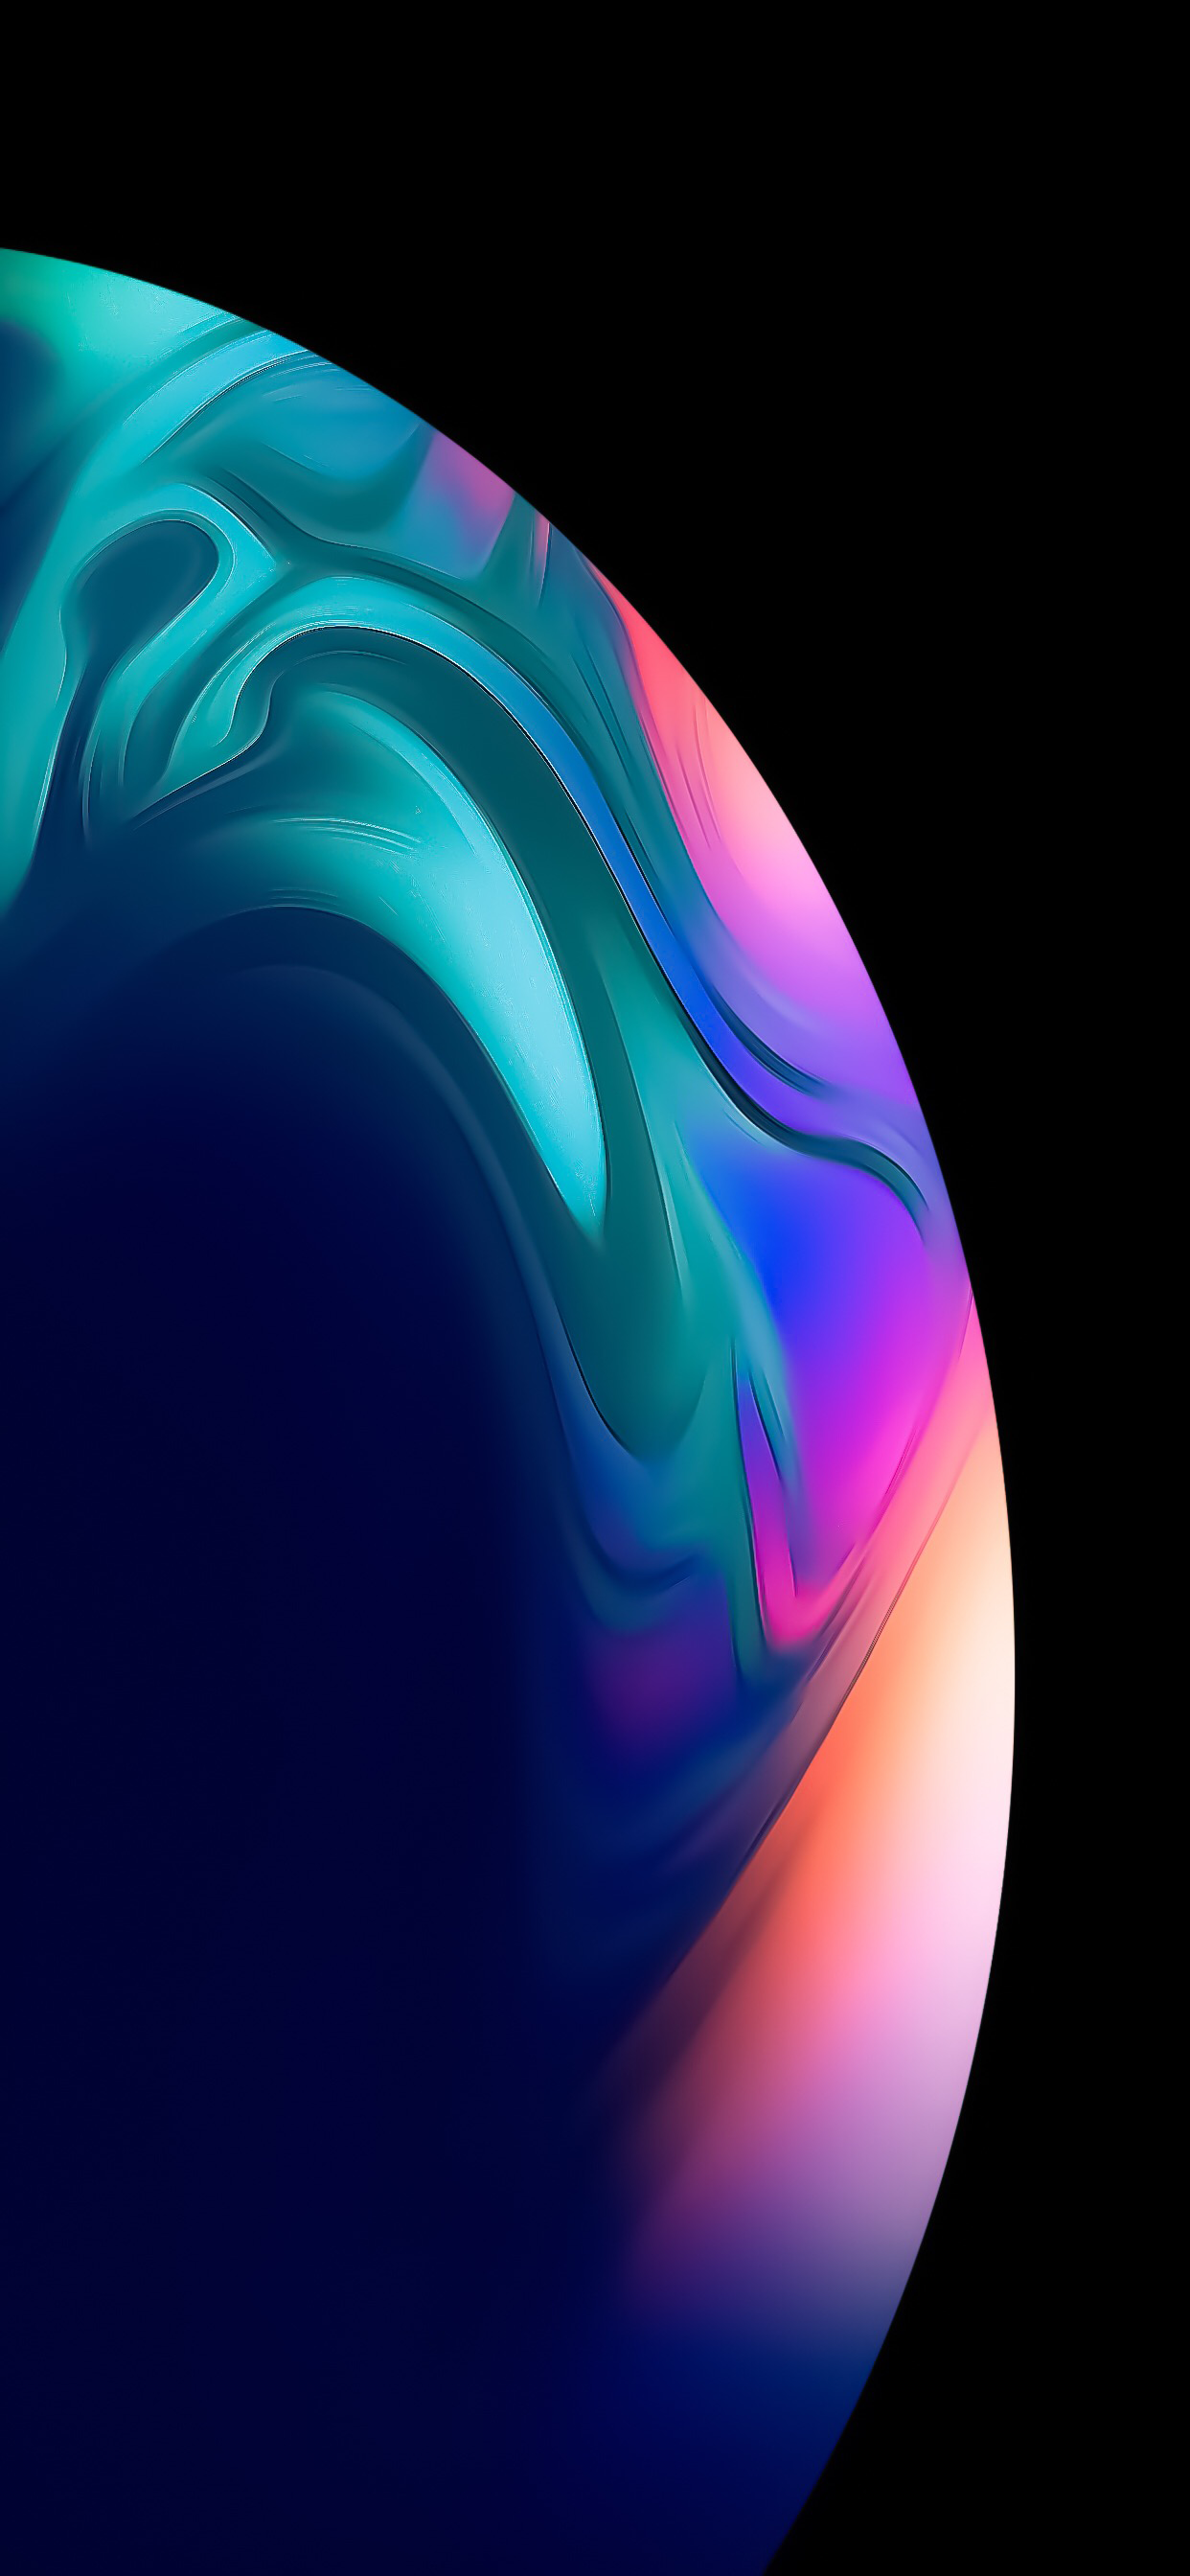 Planet Concept v3 for iPhoneXSMAX iPhoneXR Abstract